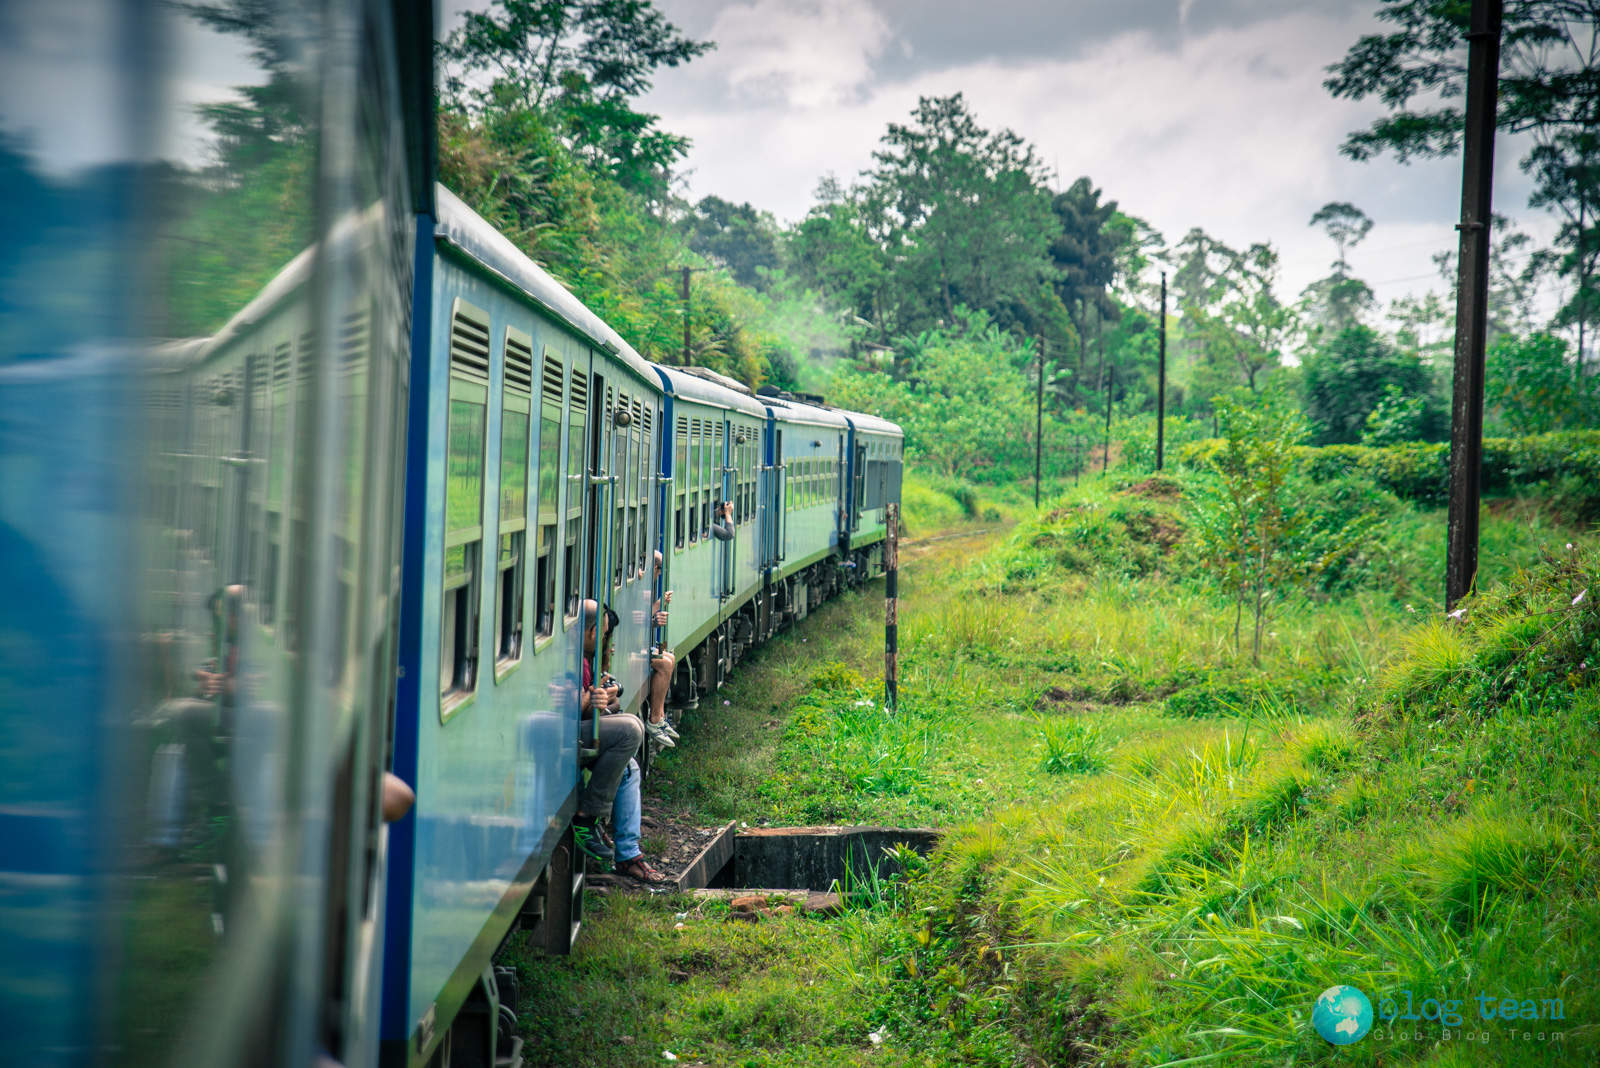 Train from Kandy to Nanuoya